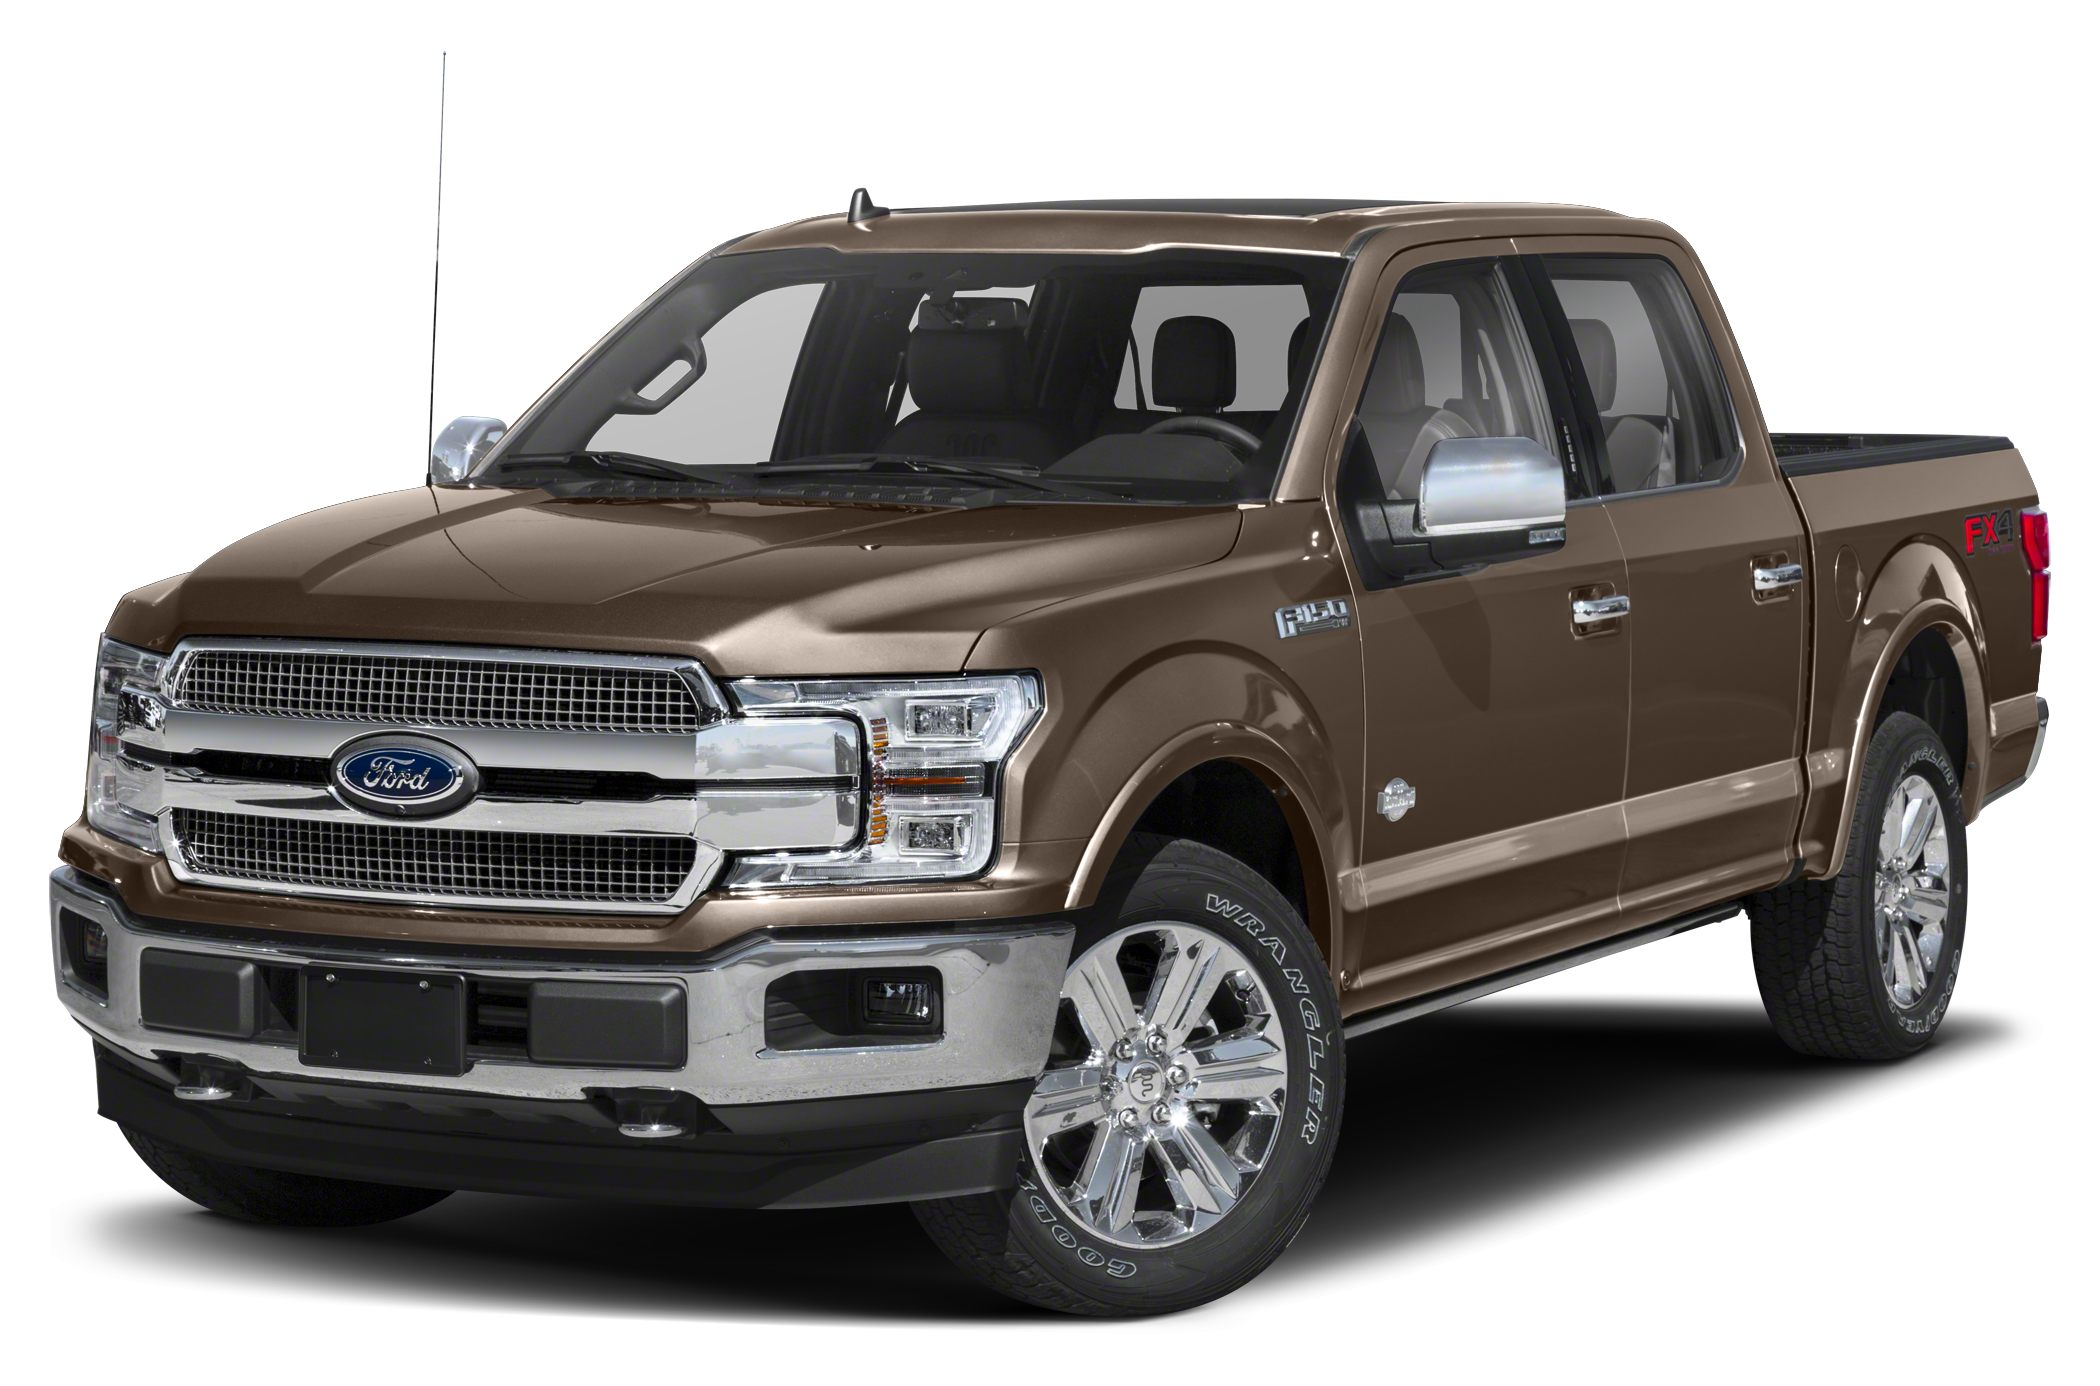 2018 Ford F-150 King Ranch 4x4 SuperCrew Cab Styleside 5.5 ft. box 145 in. WB